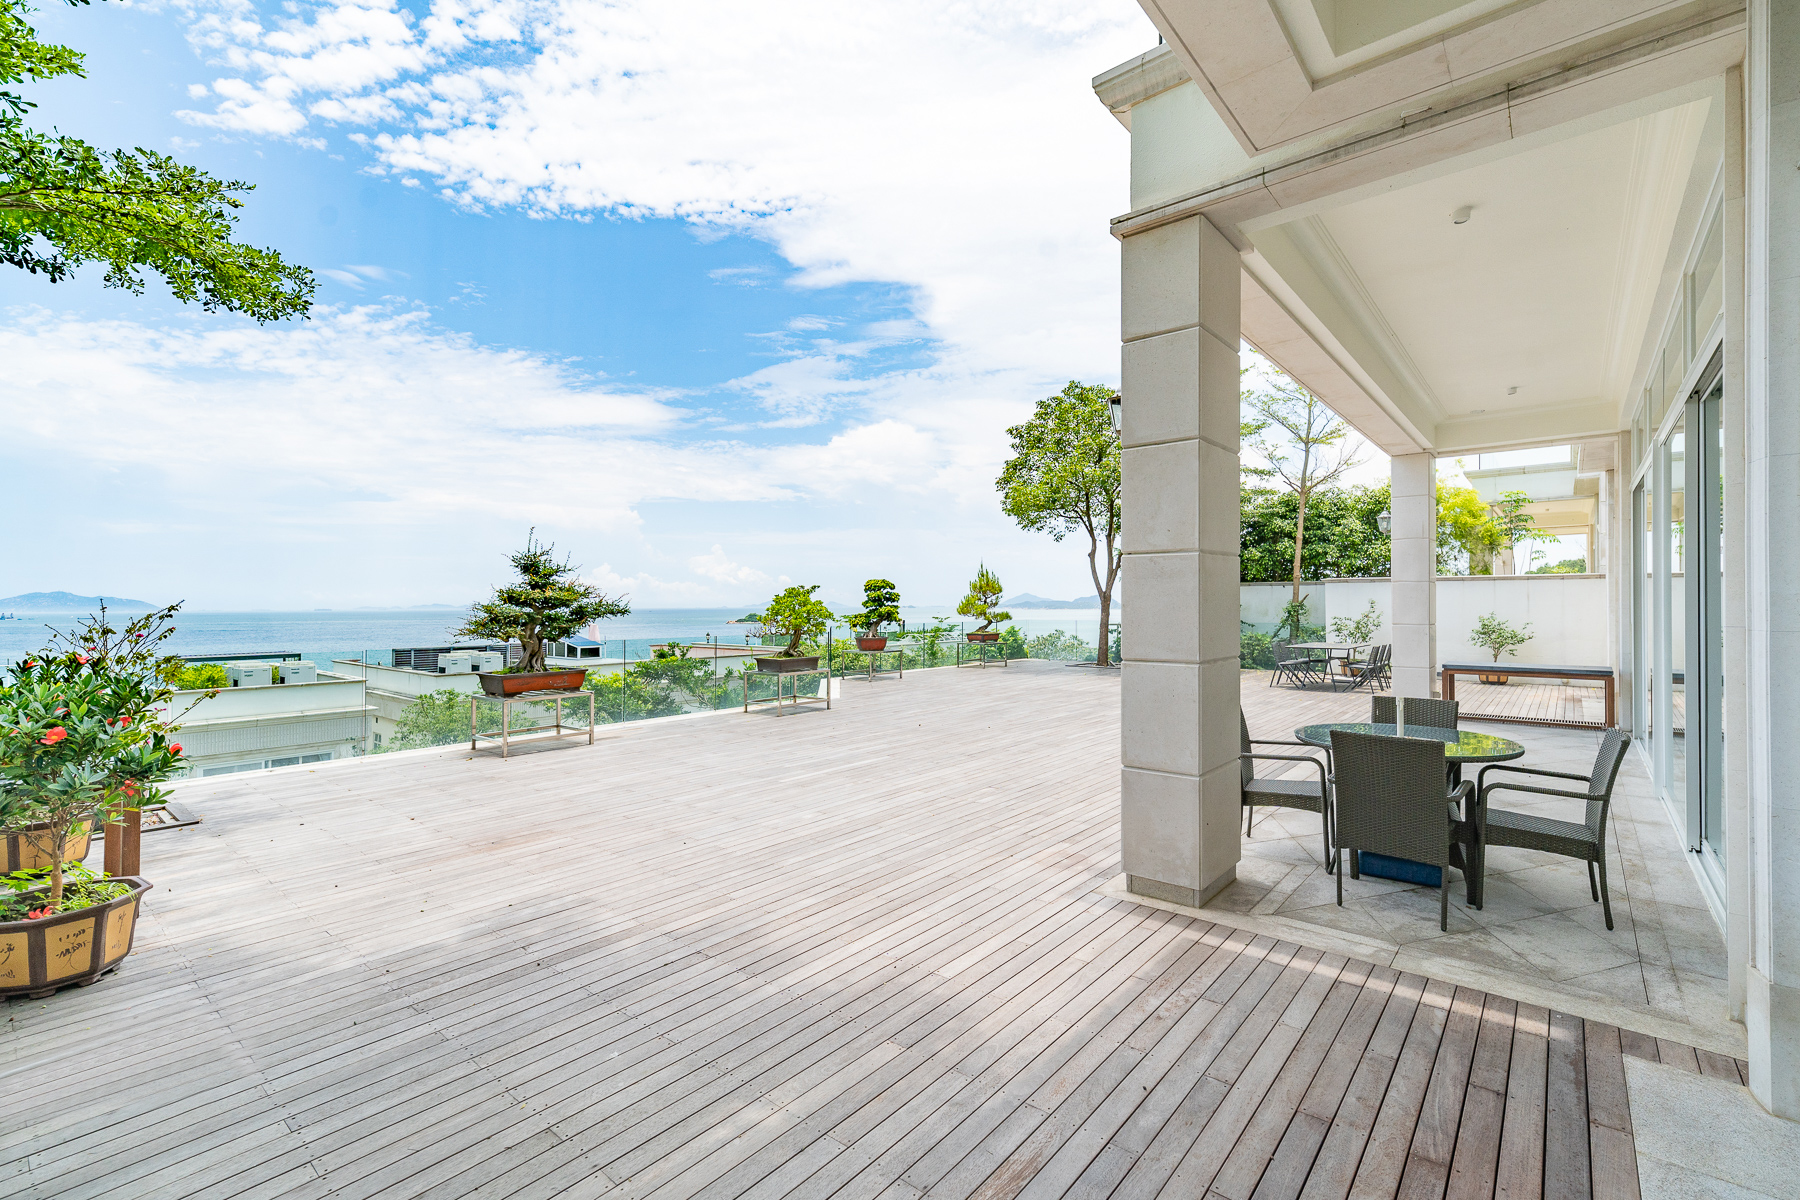 Single Family Homes for Active at [Sole Agent] Botanica Bay Lantau Island, Hong Kong Hong Kong